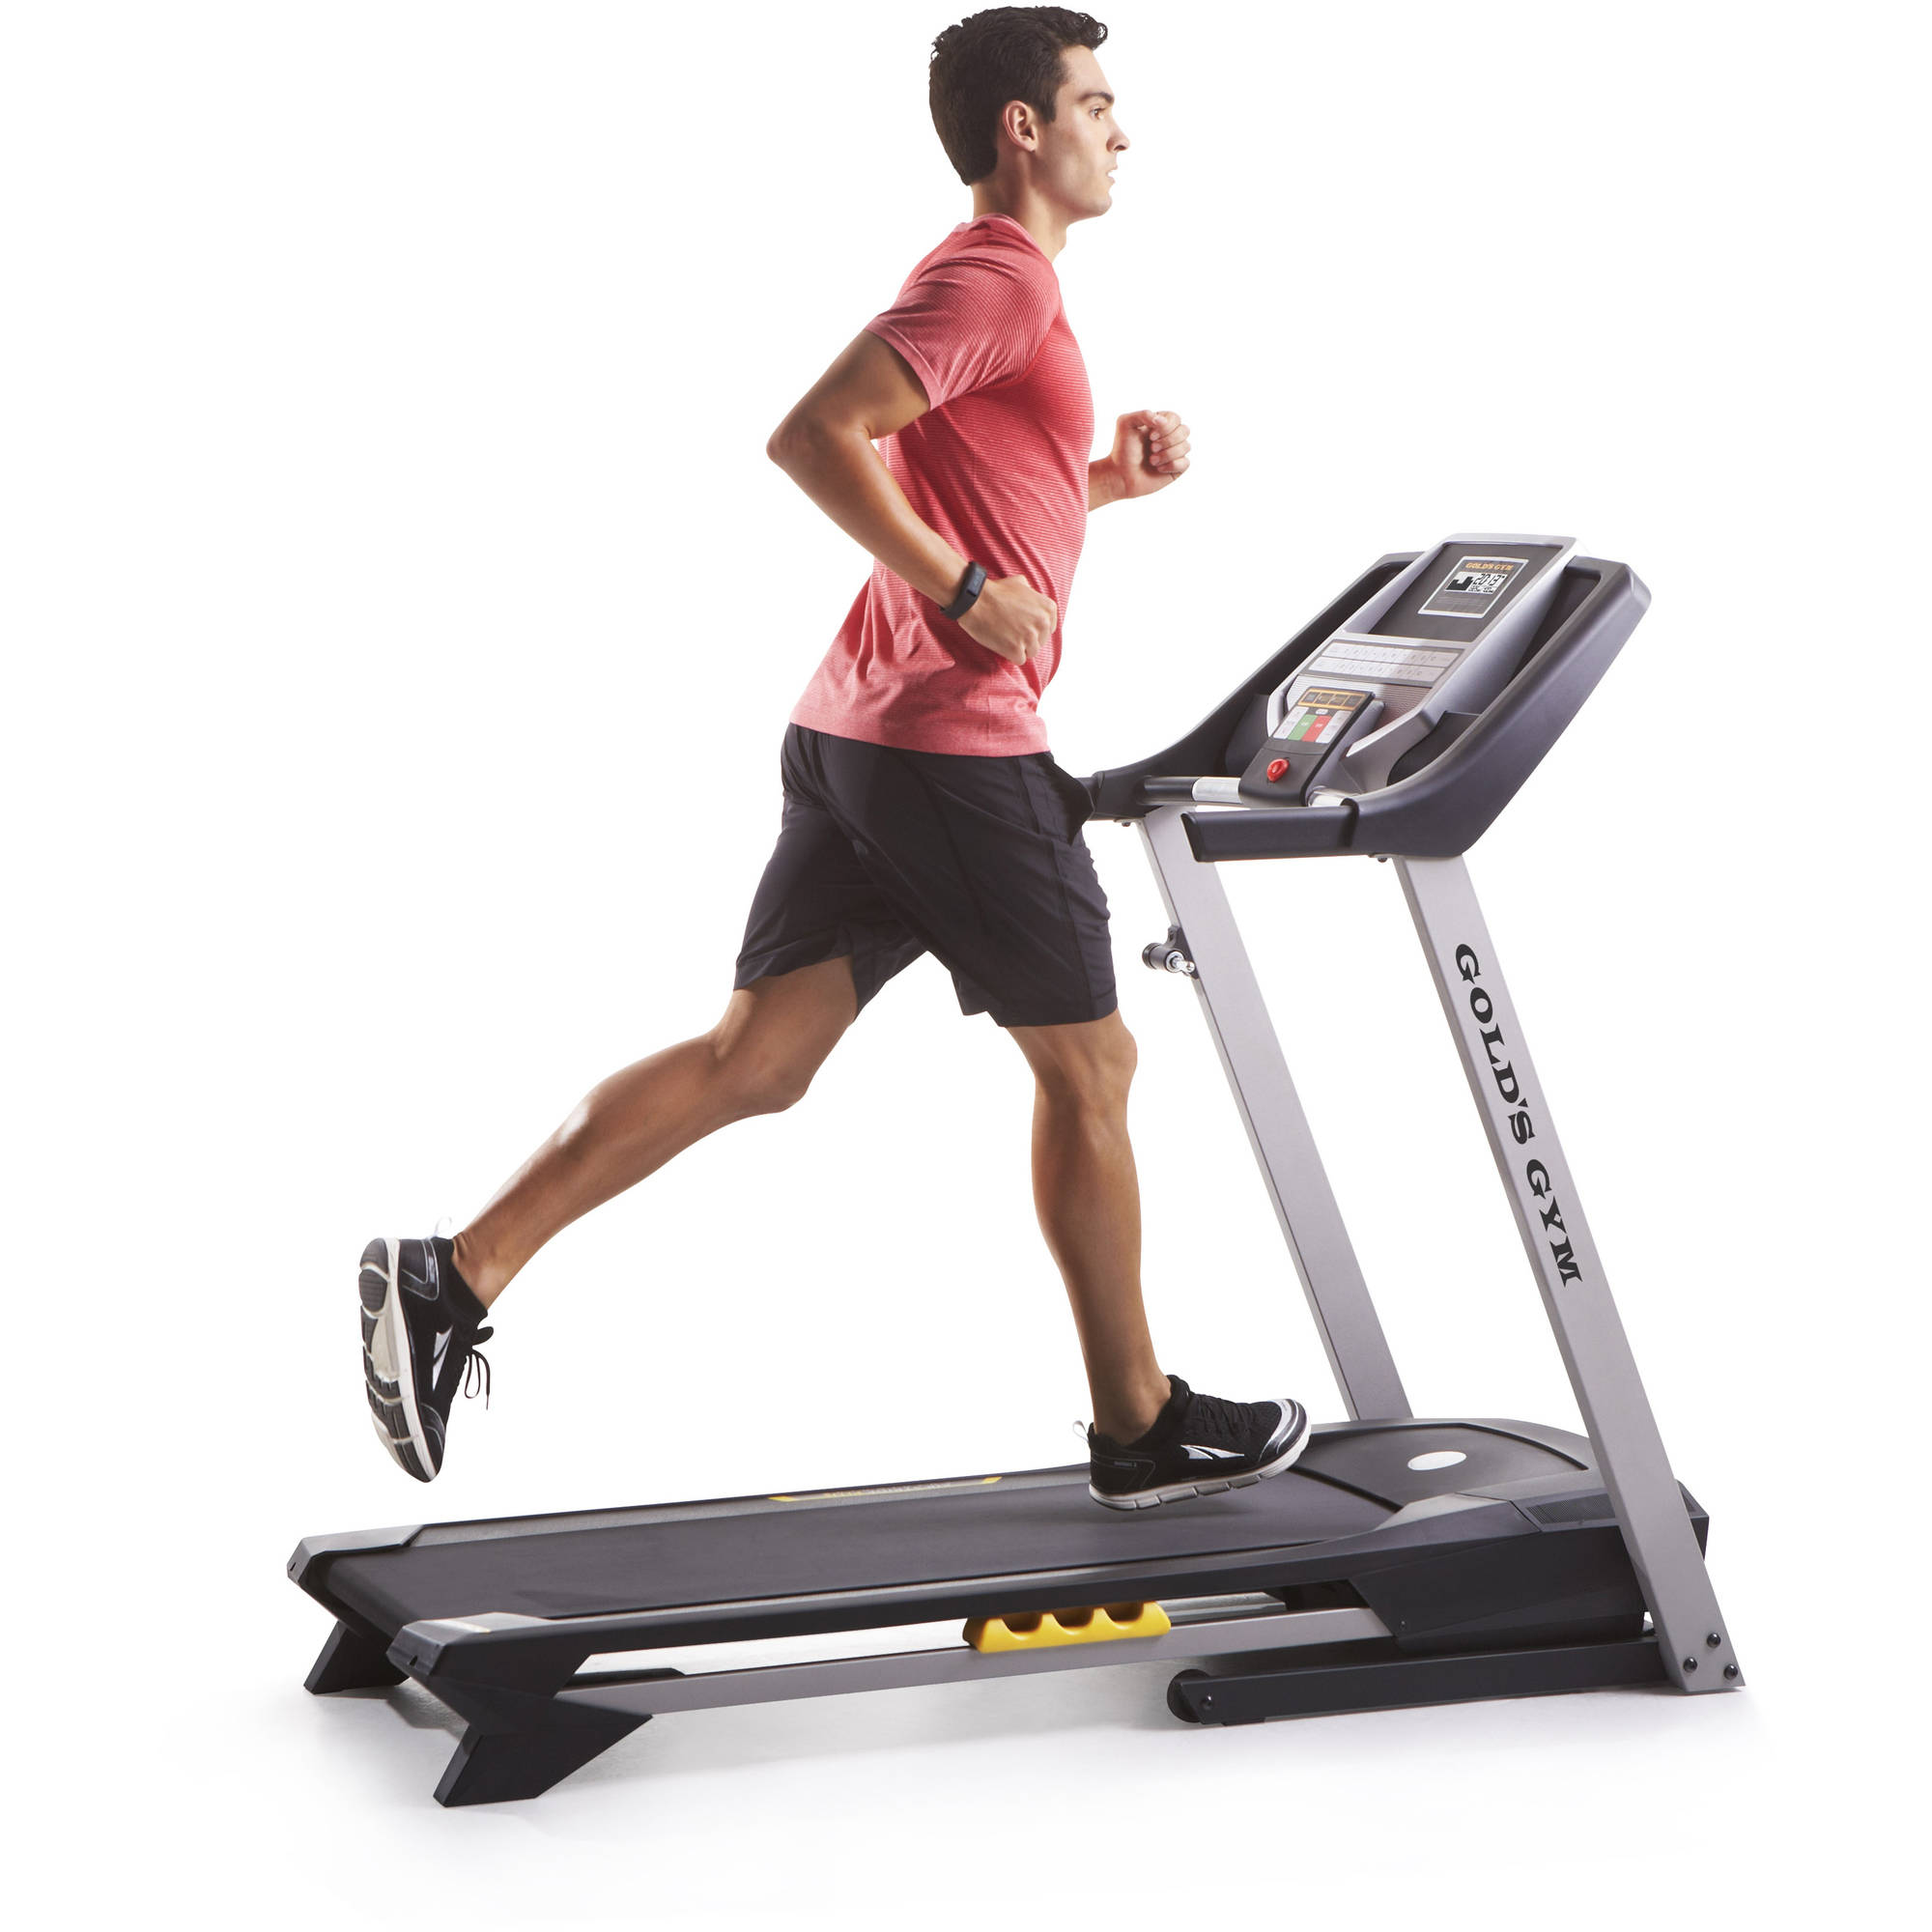 Gold's Gym Trainer 520 Treadmill with Heart Rate Monitor and Power Incline by Icon Health & Fitness Inc.